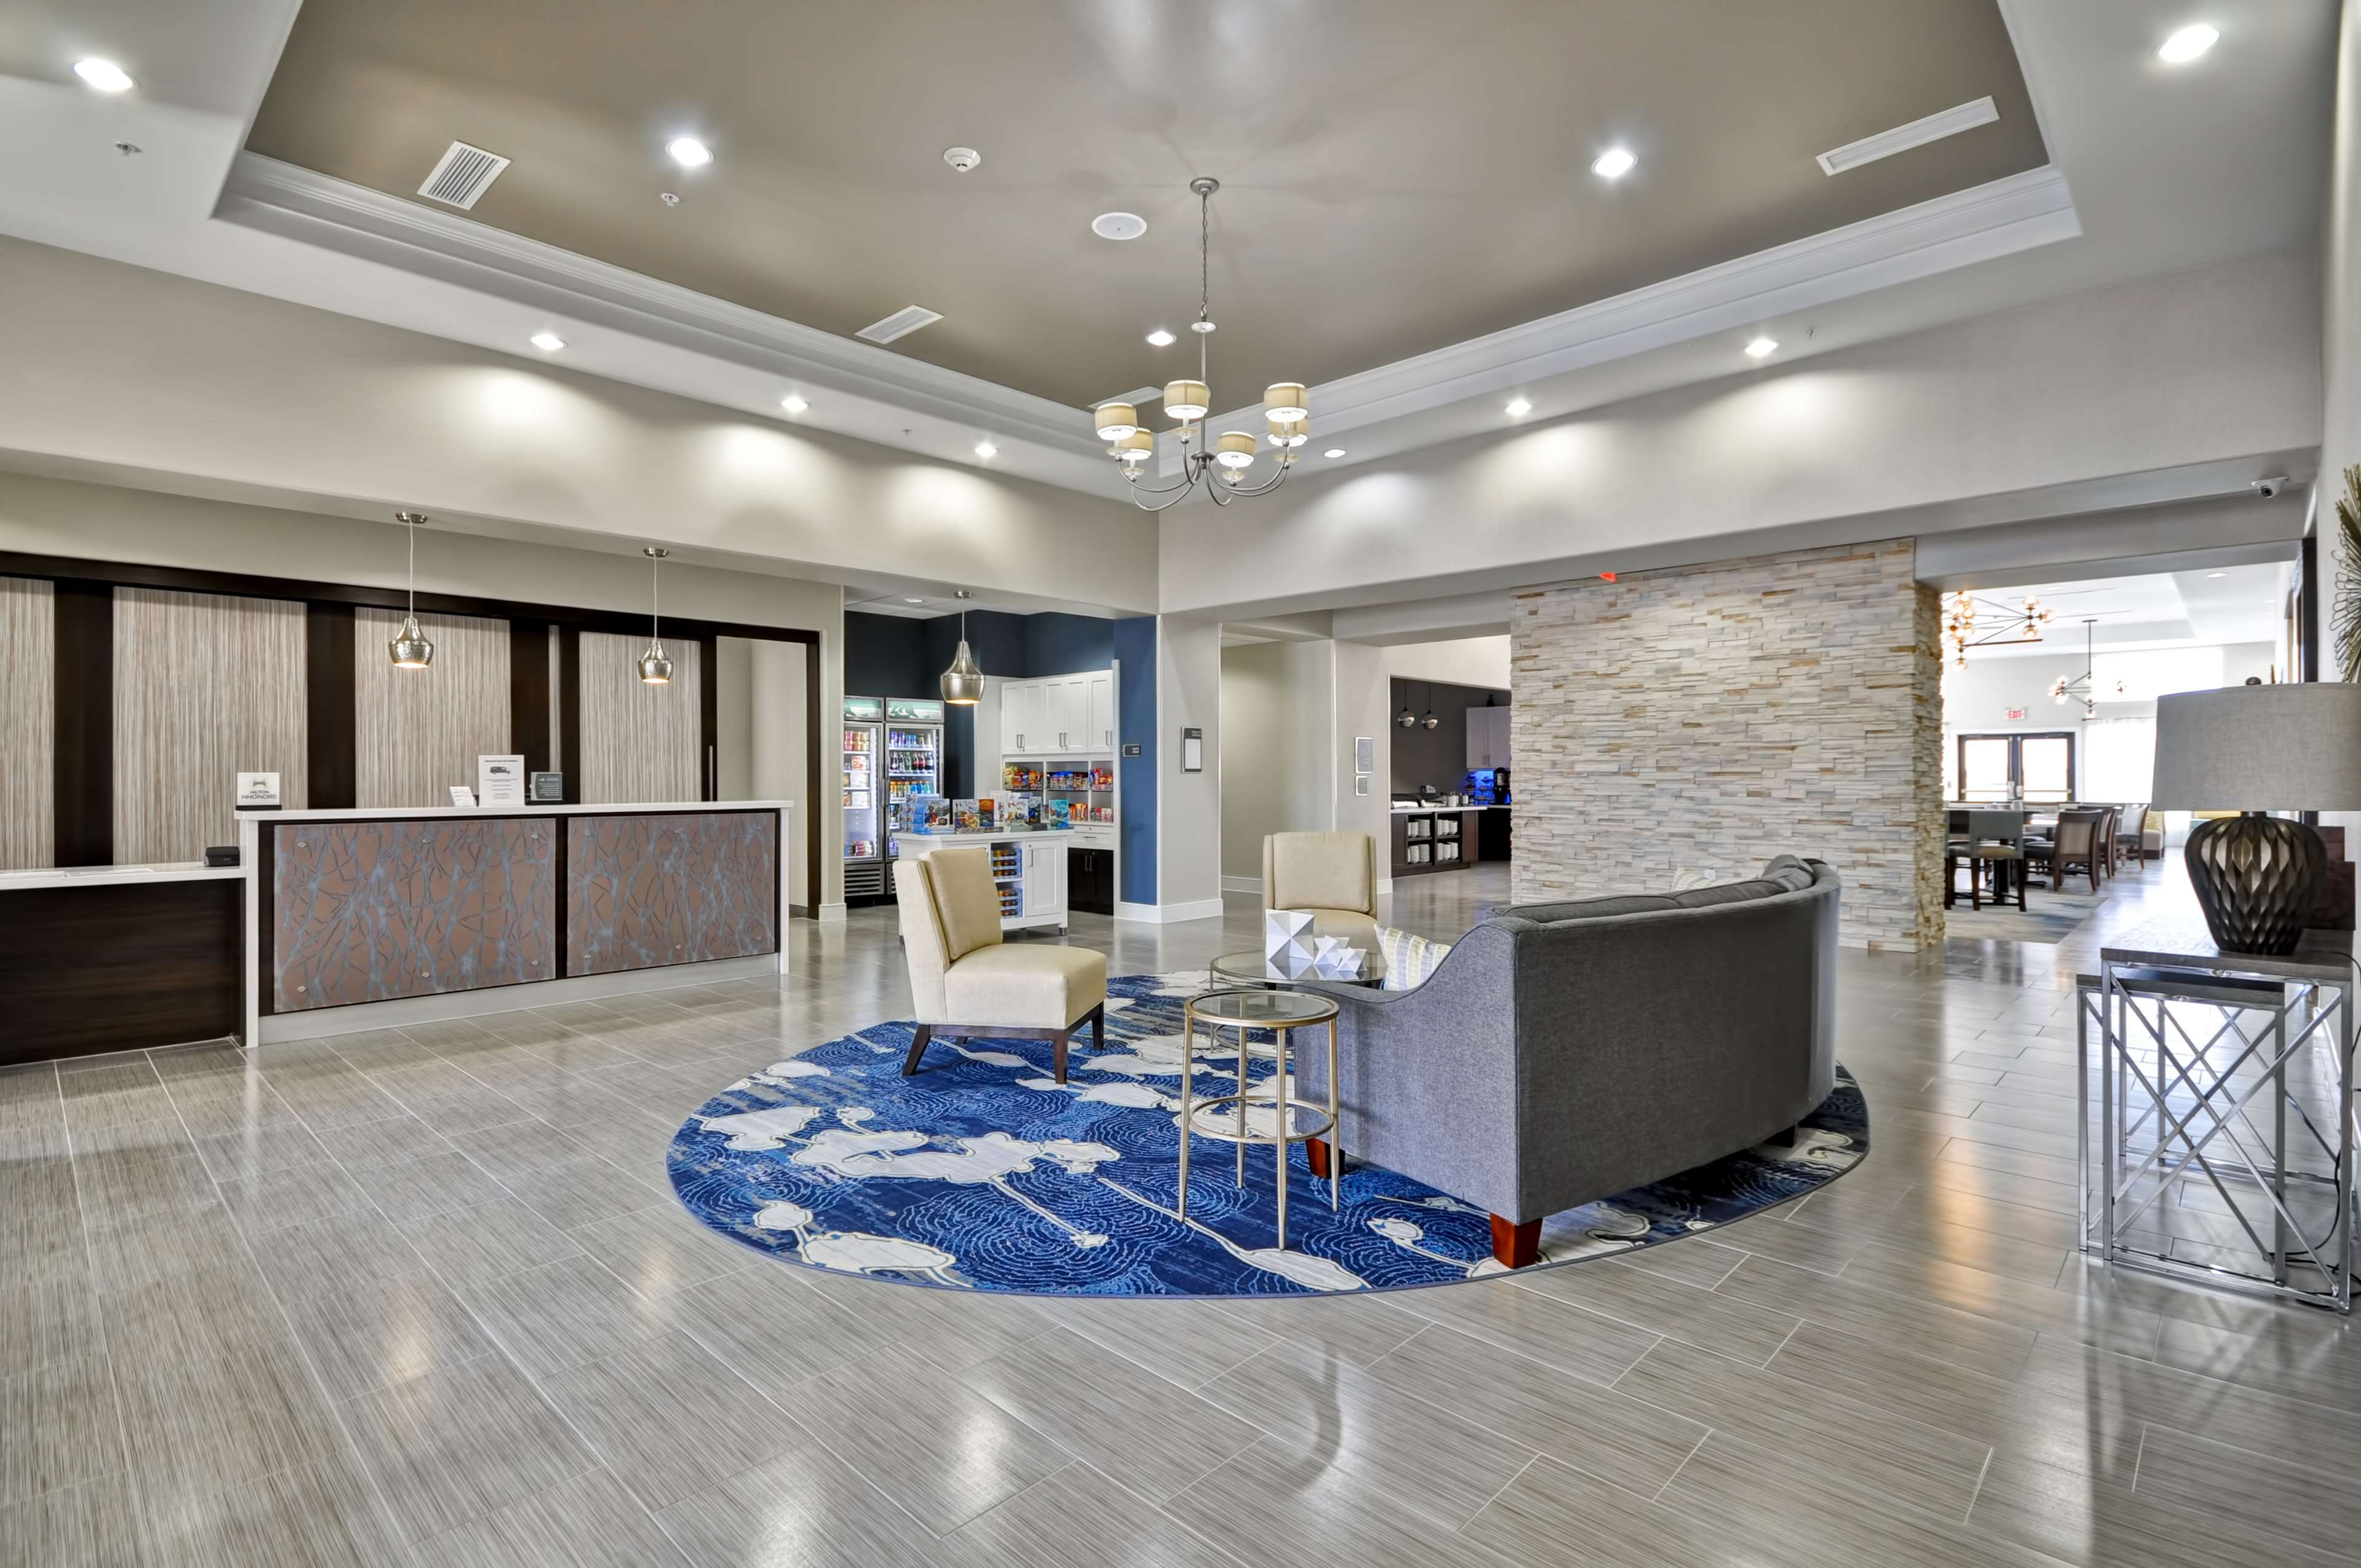 Homewood Suites by Hilton New Braunfels image 15